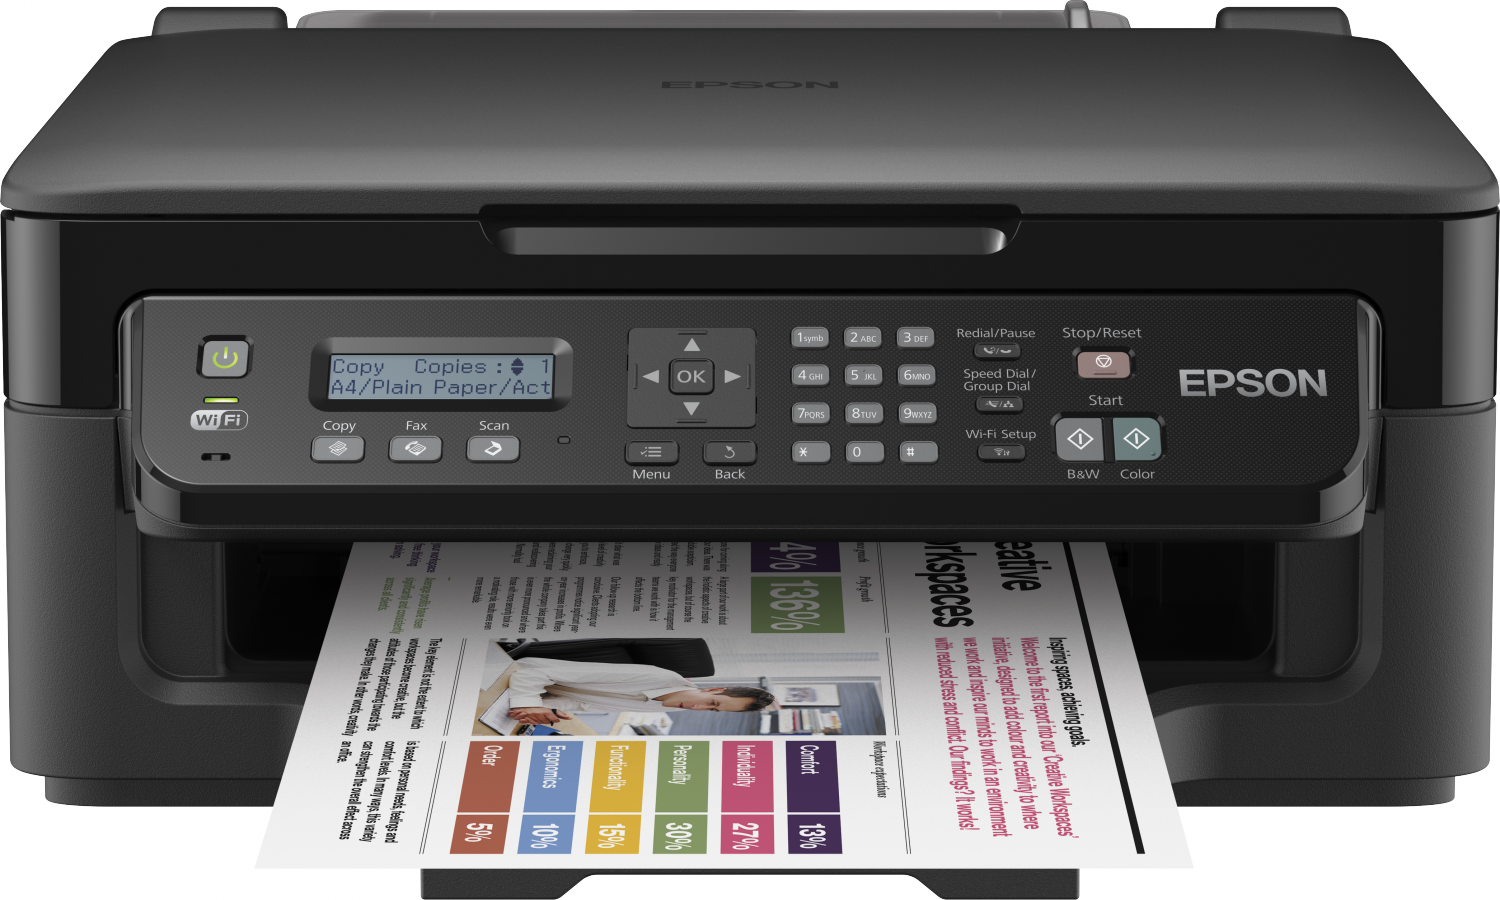 Epson WorkForce WF-2510 Review: Better Than Most Budget All-in-Ones